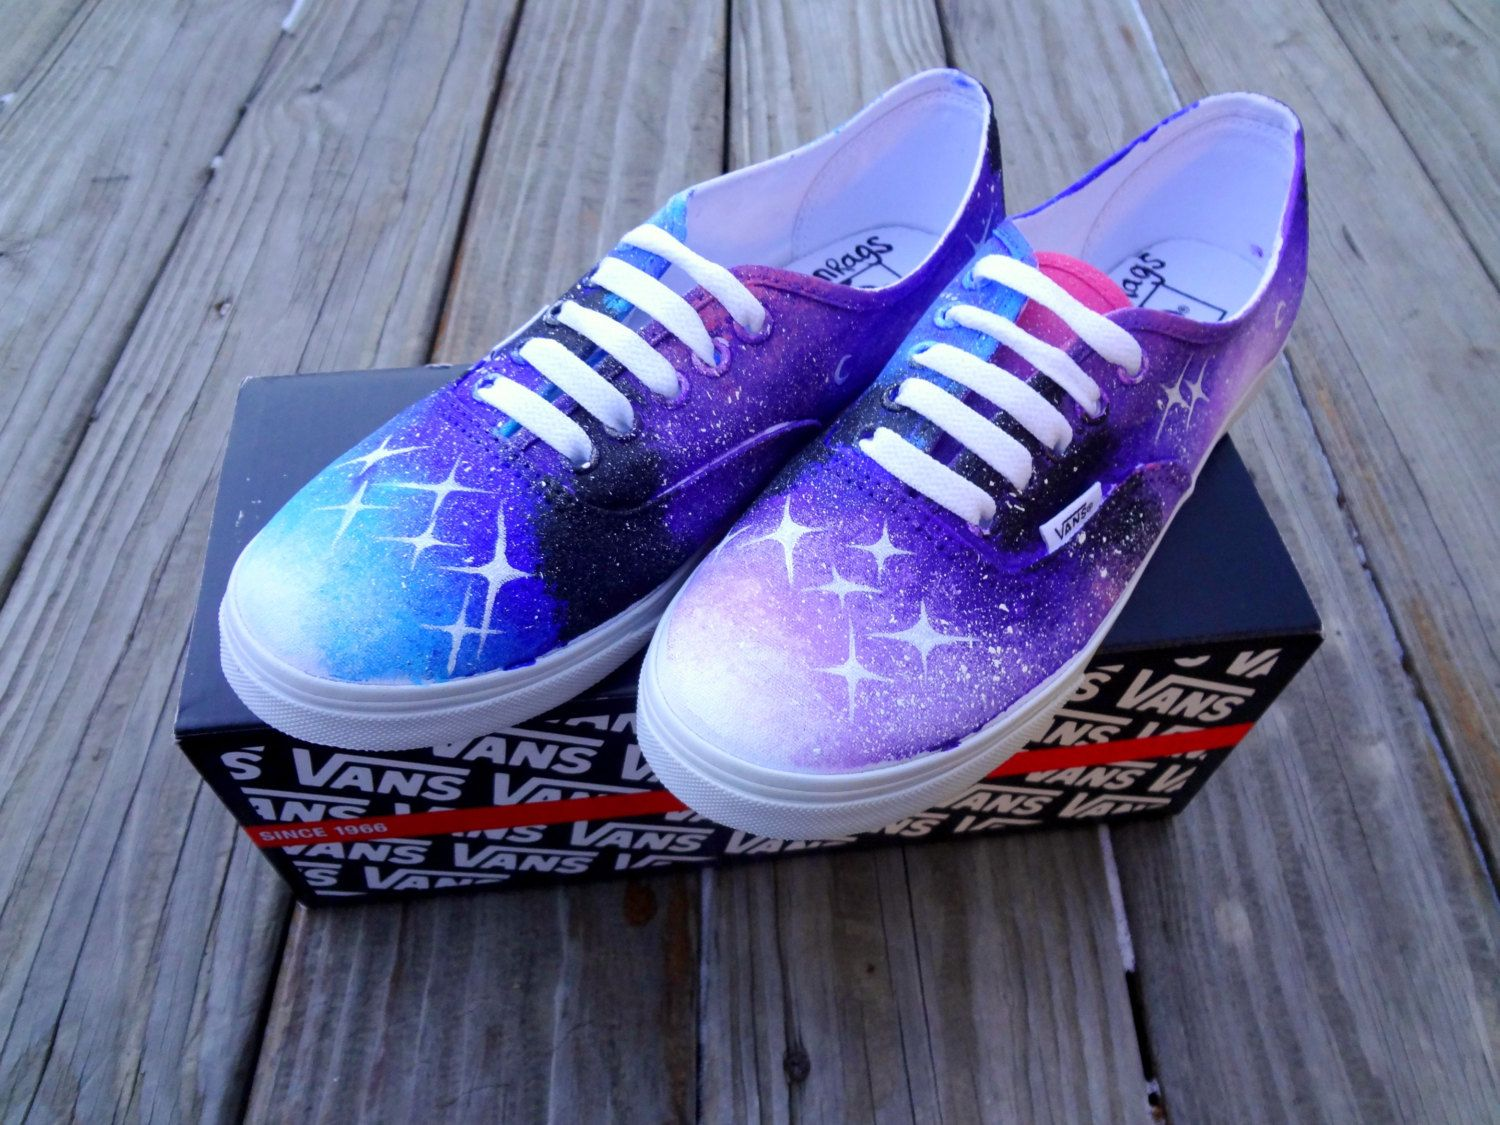 Galaxy Vans Shoes!!!! Ah I really wantneed these too